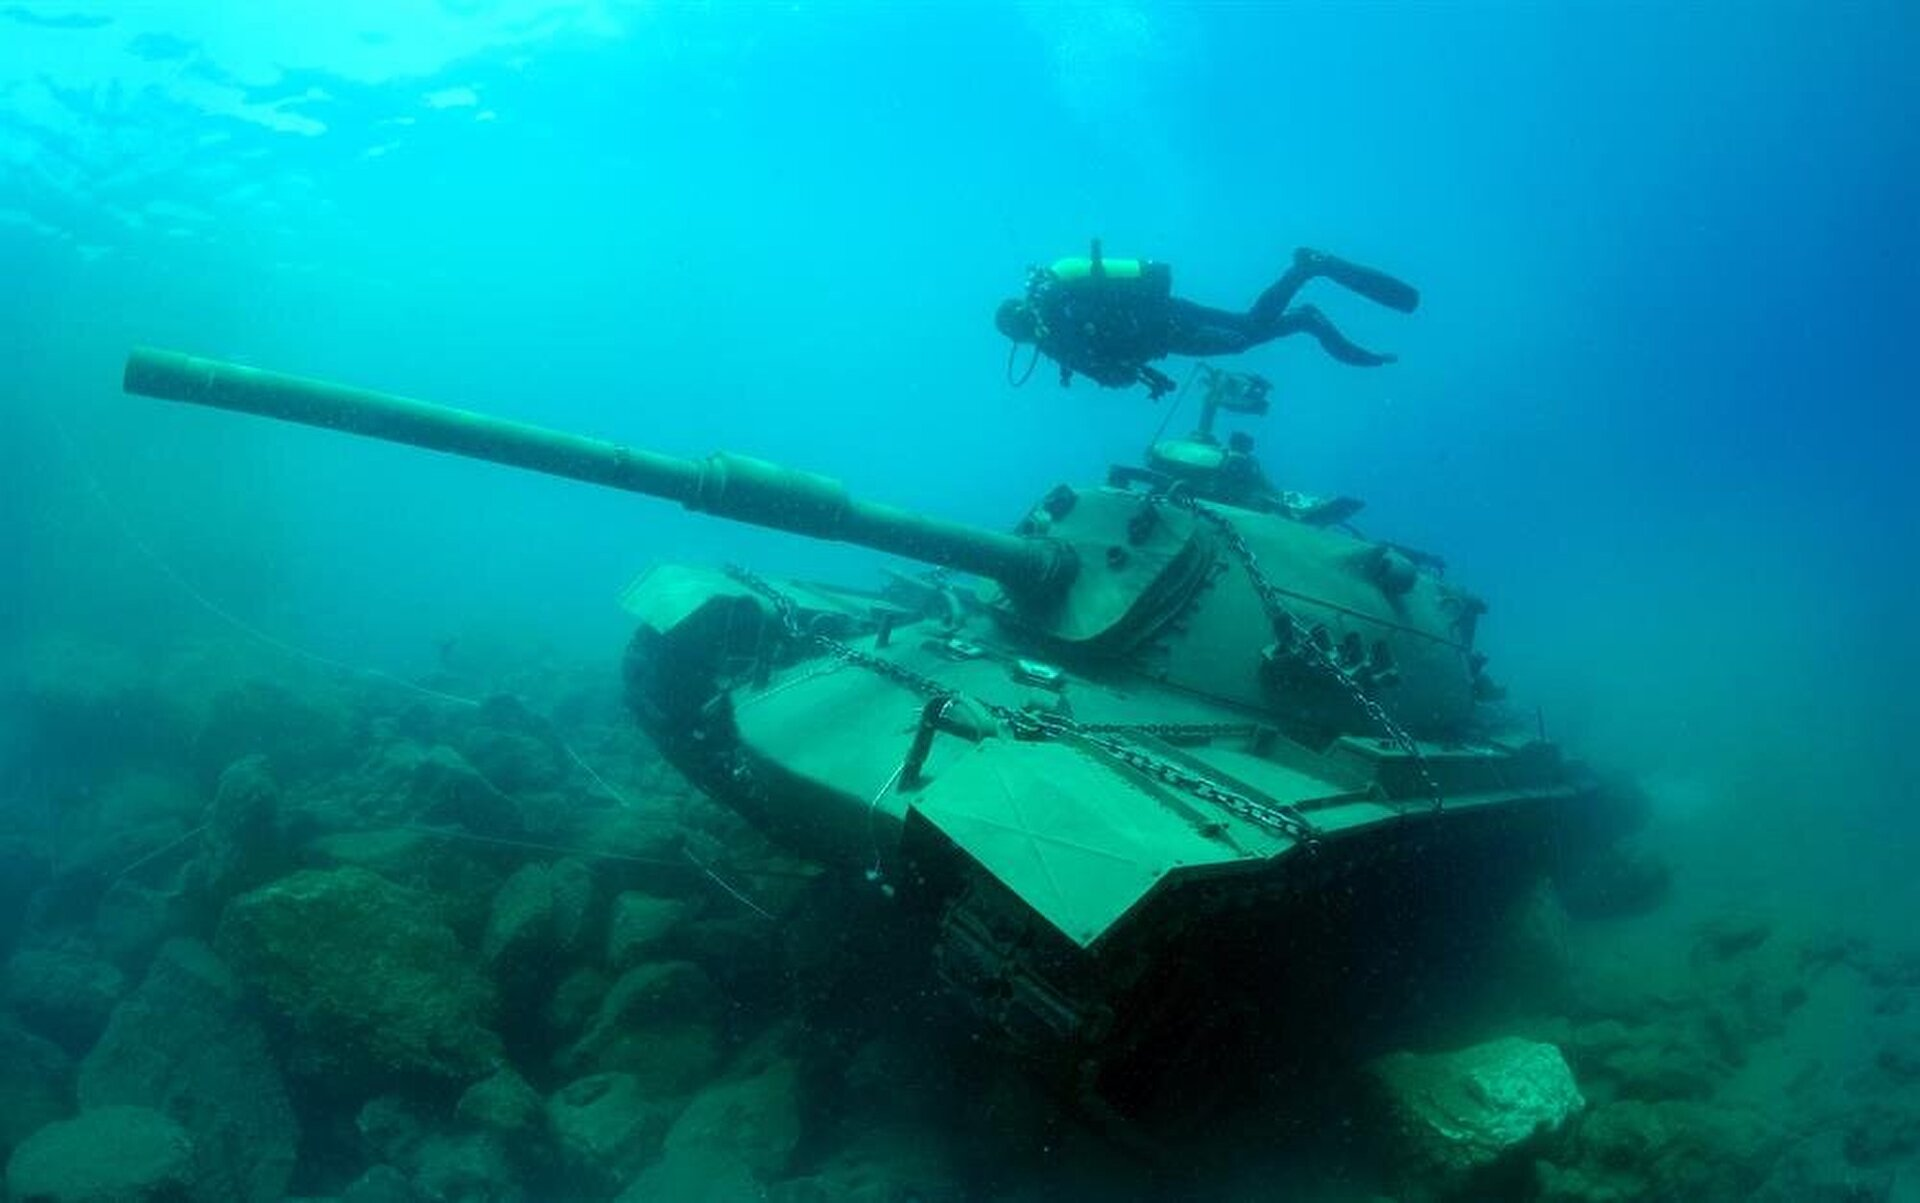 45 ton tank from 60s found in the Mediterranean